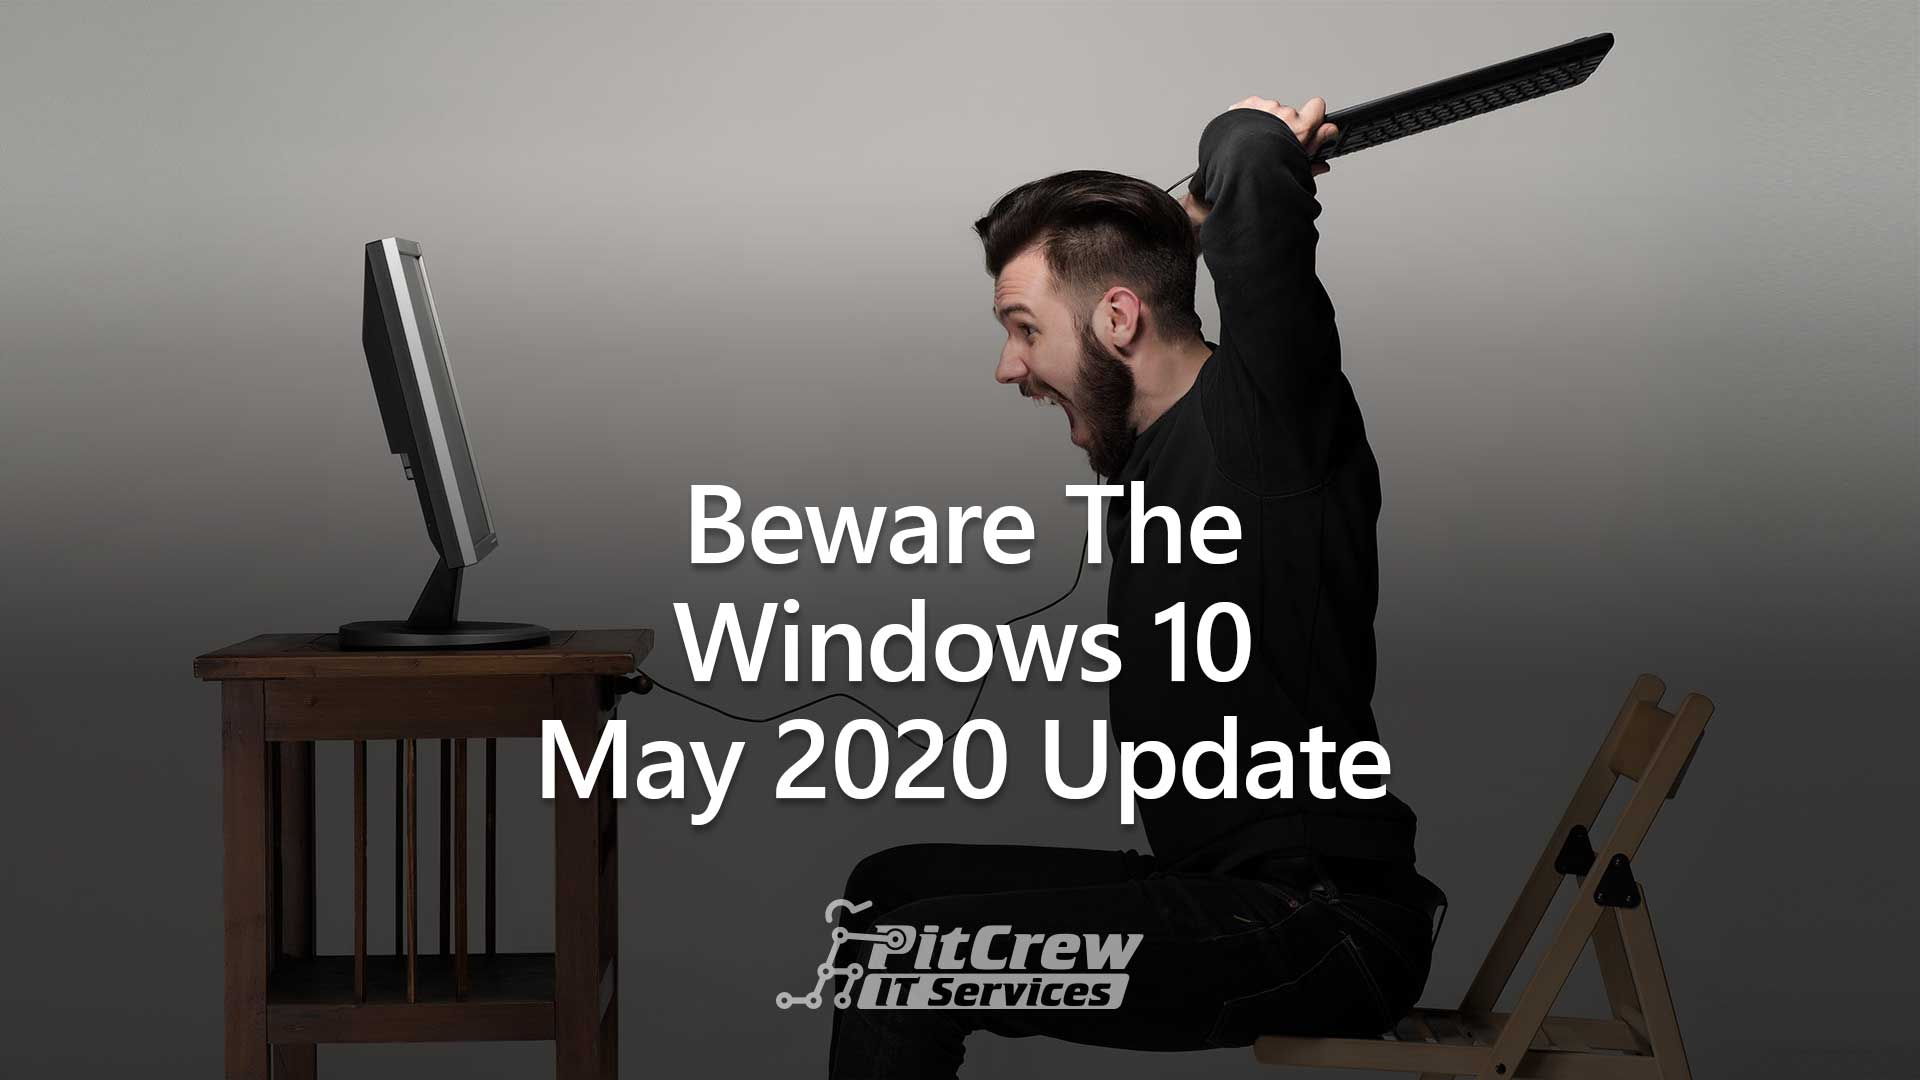 Beware the Windows 10 May 2020 Update